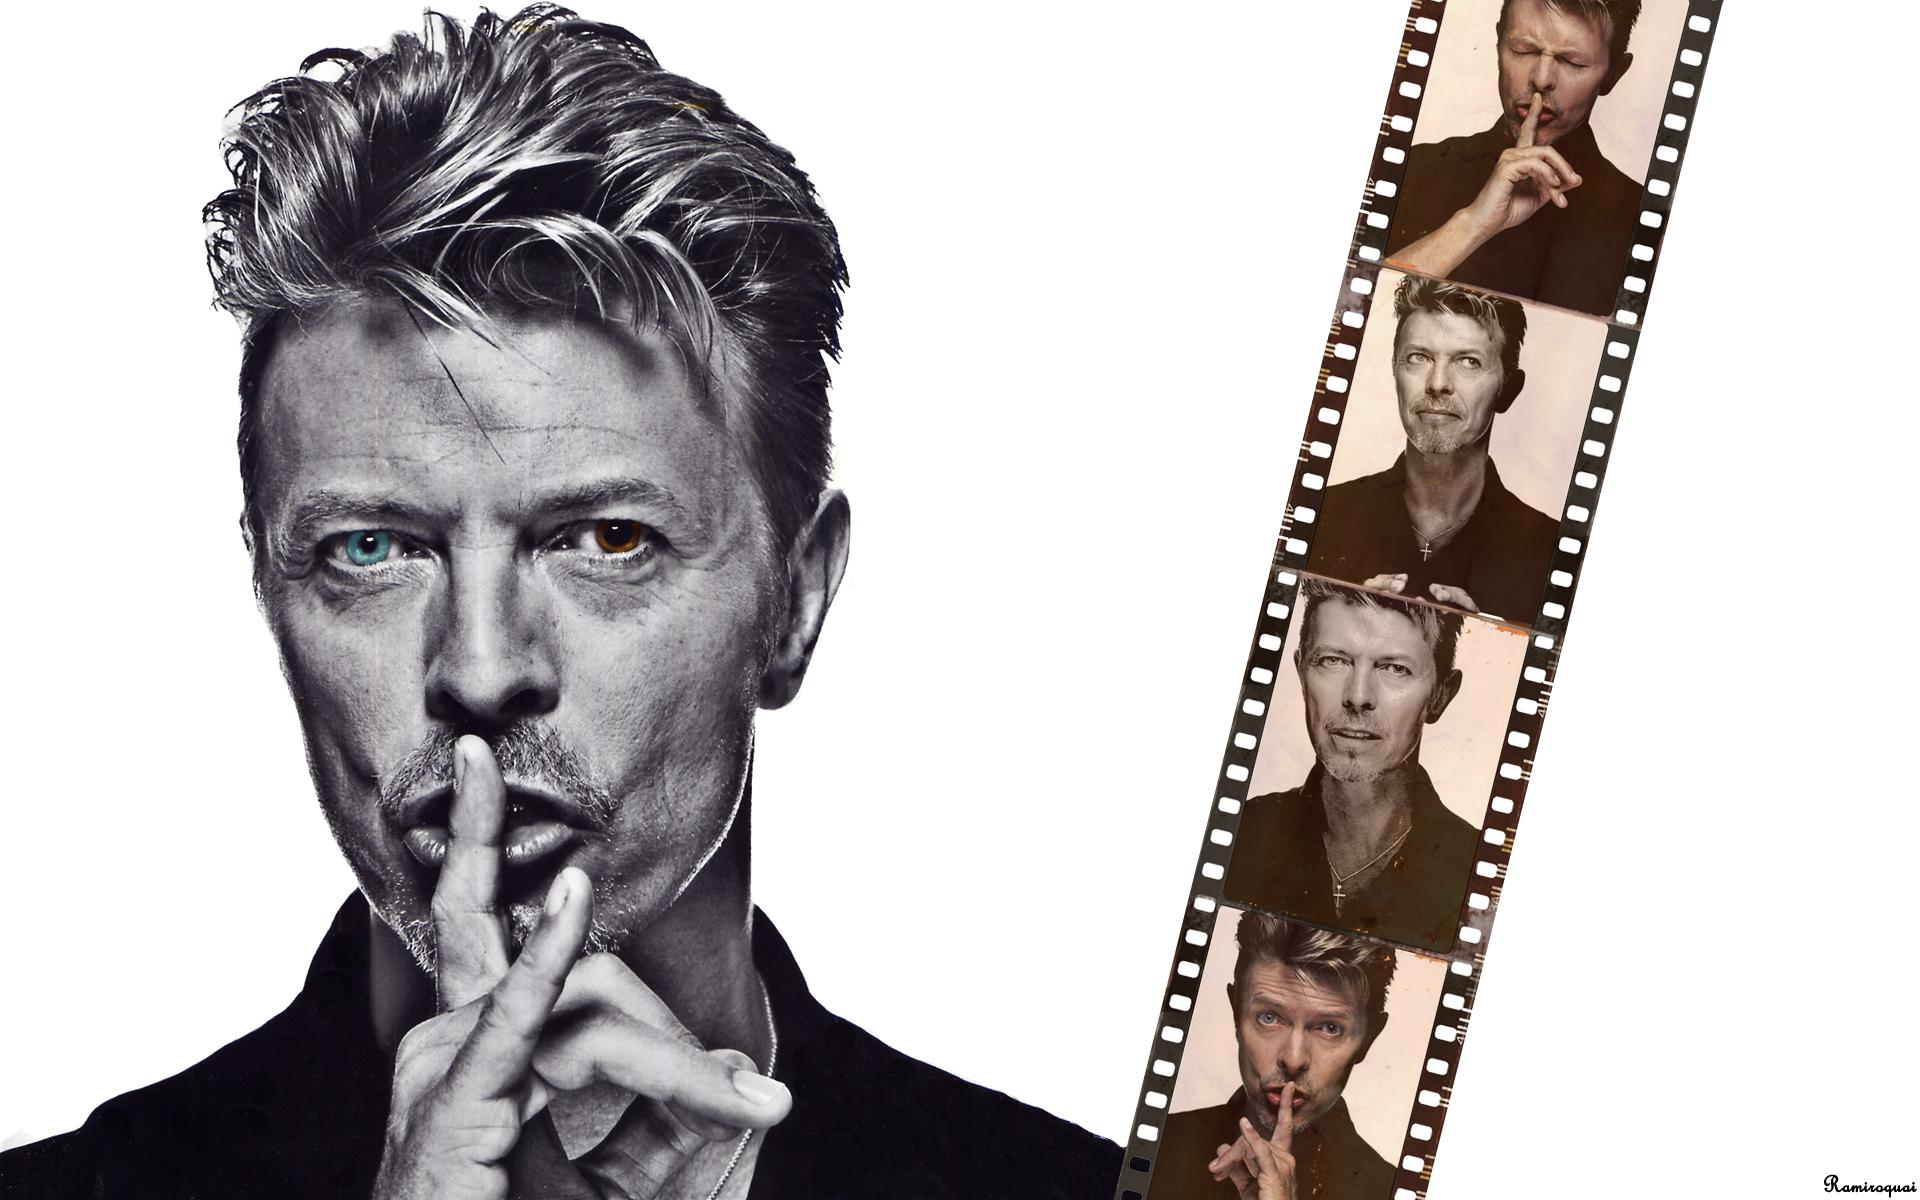 David Bowie Wallpaper by Ramiroquai on DeviantArt